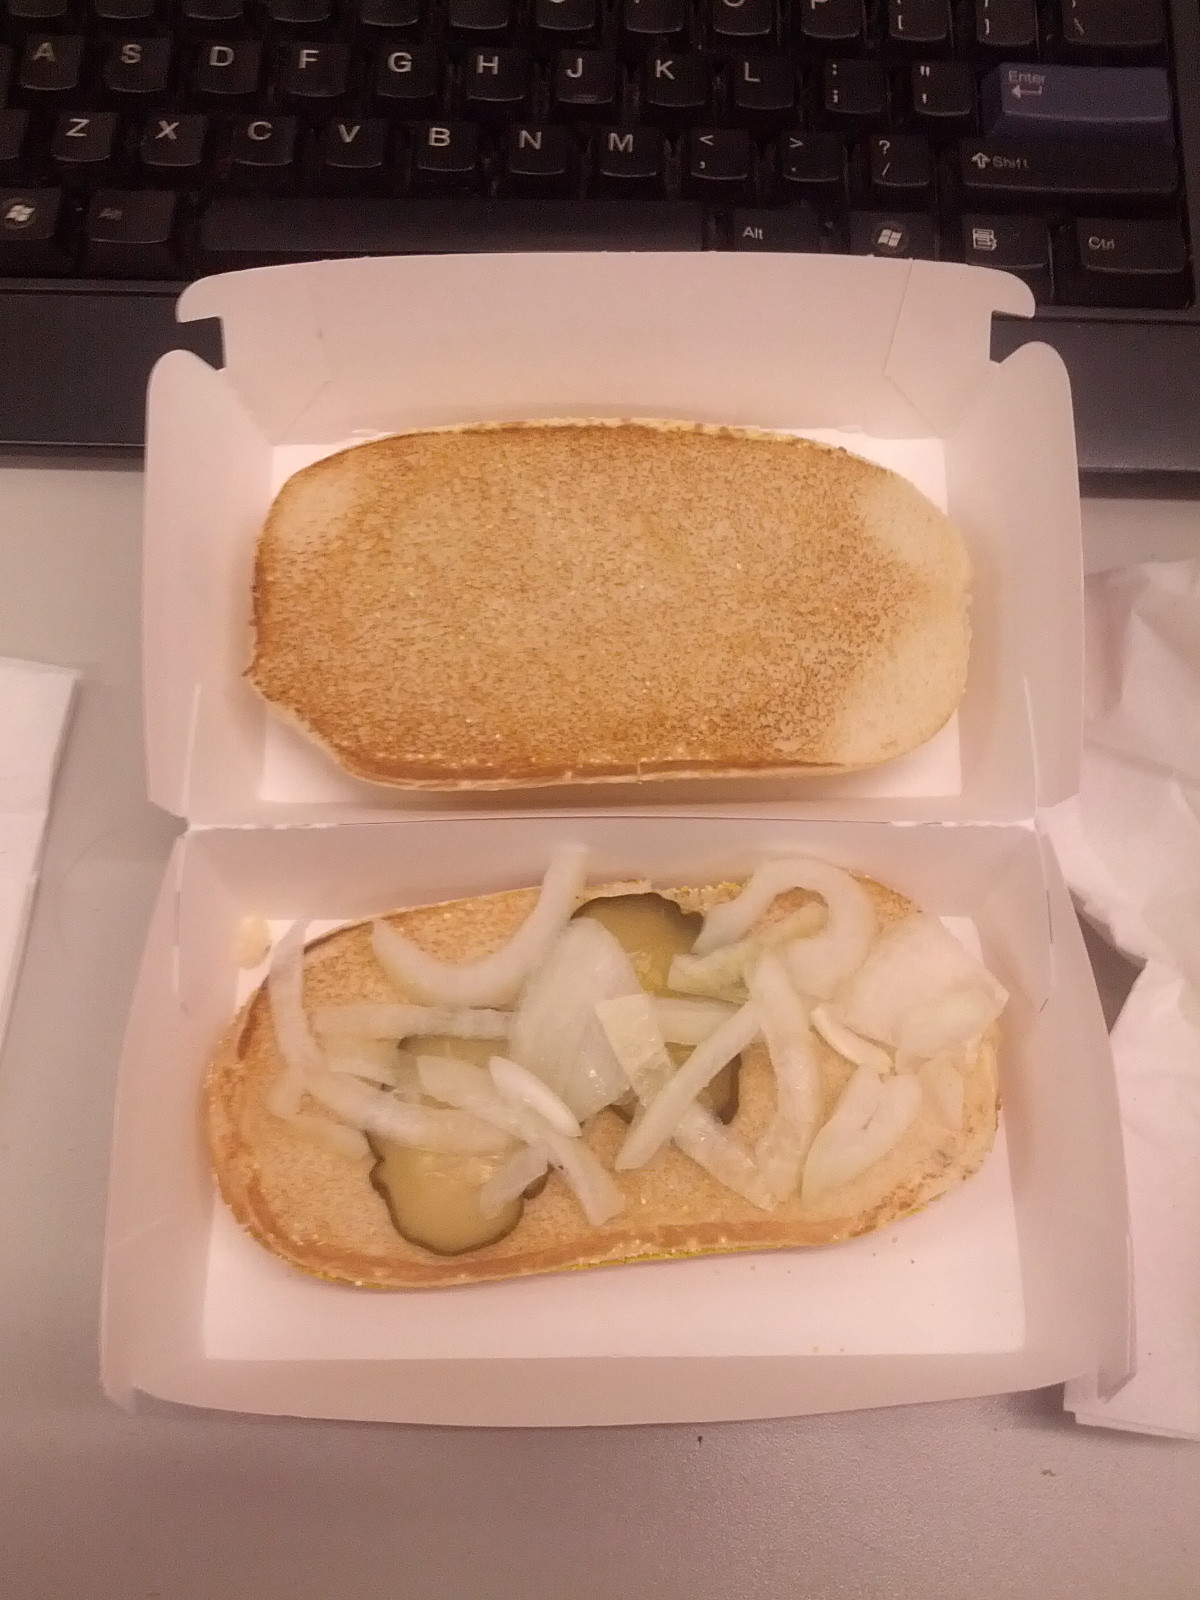 gross pictures of alleged McDonald's food 10